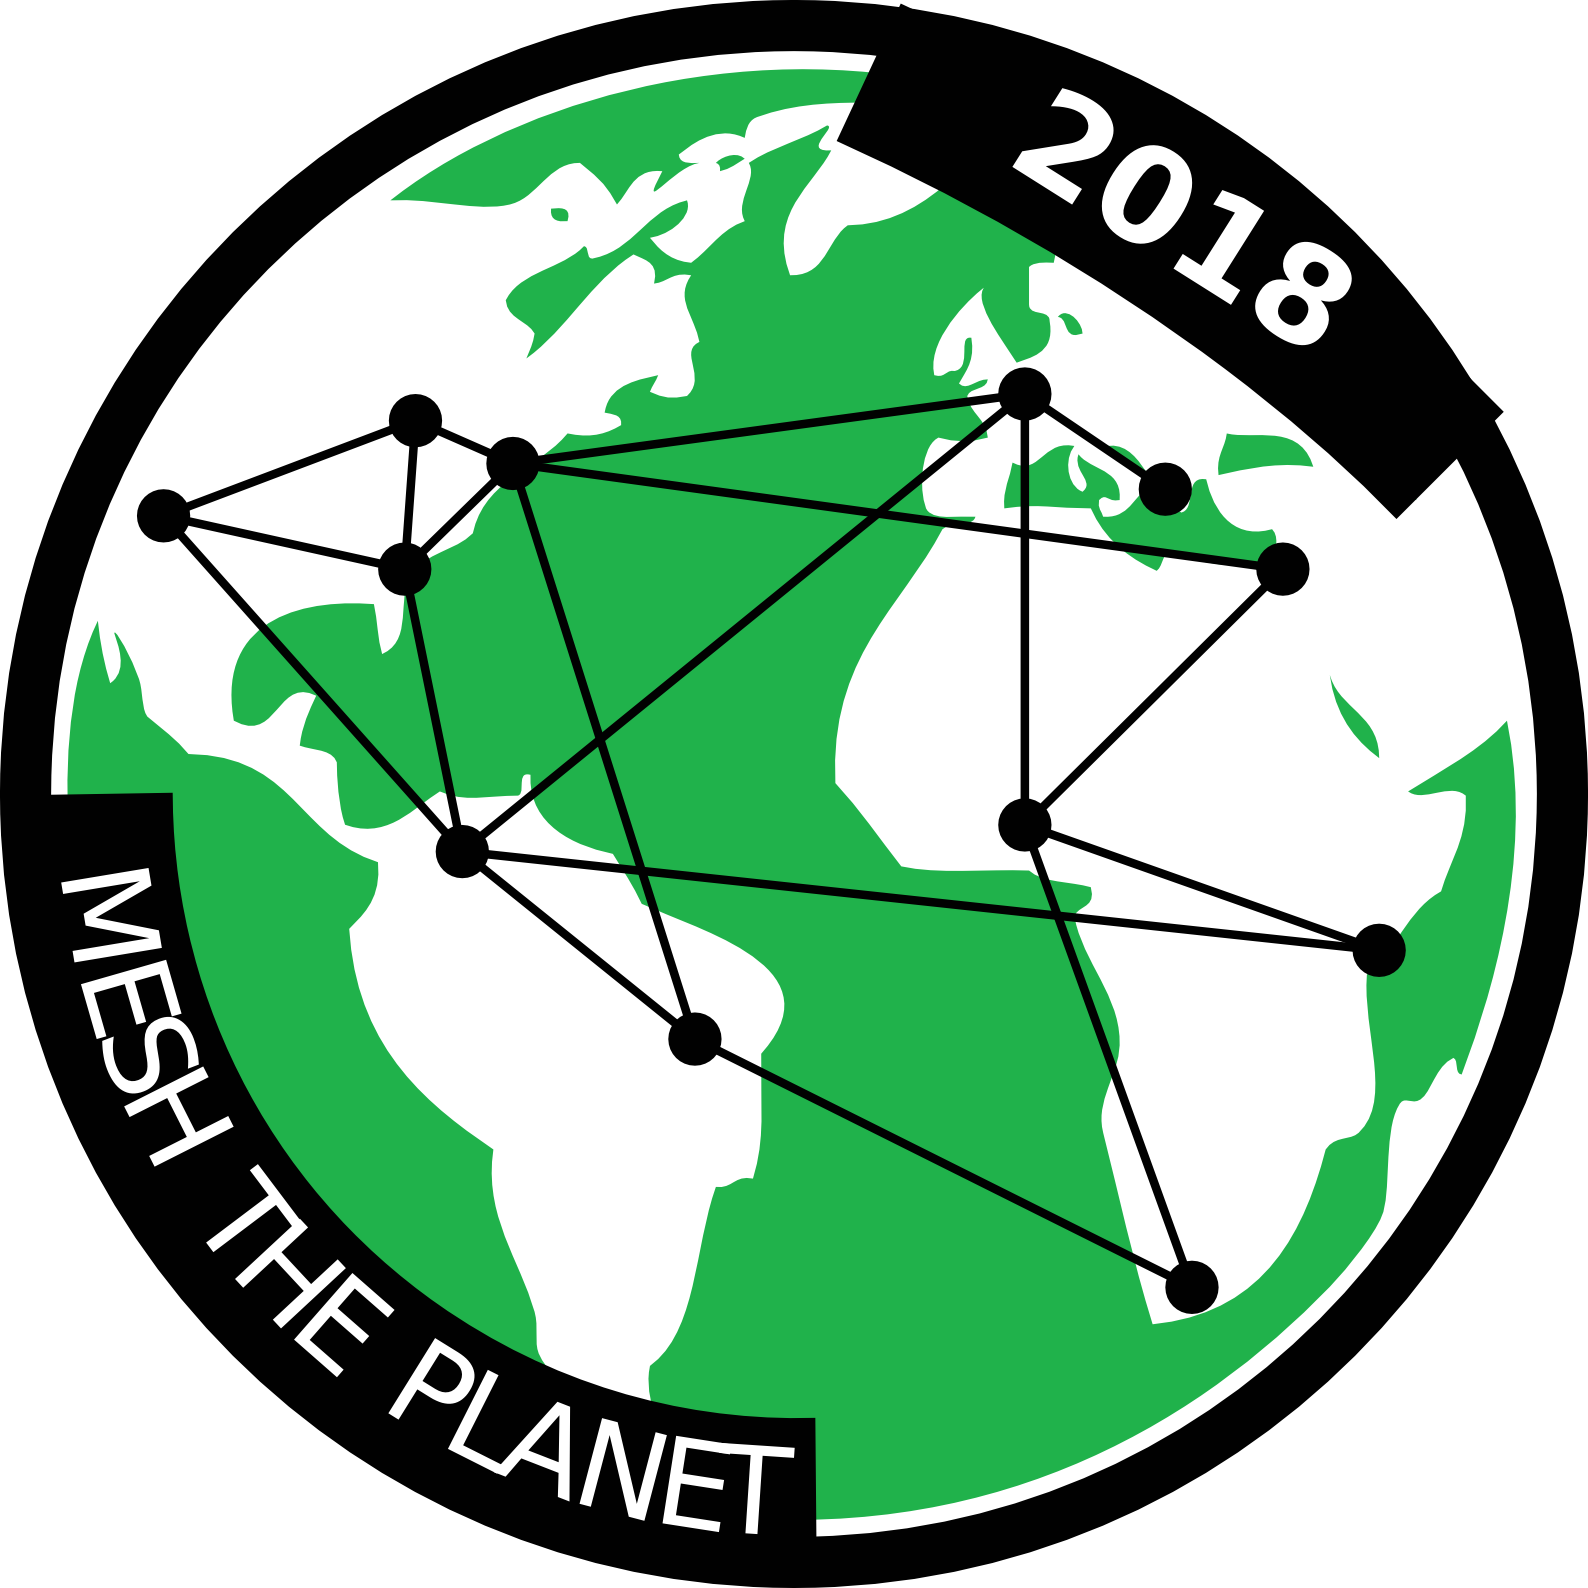 Mesh earth2018.png